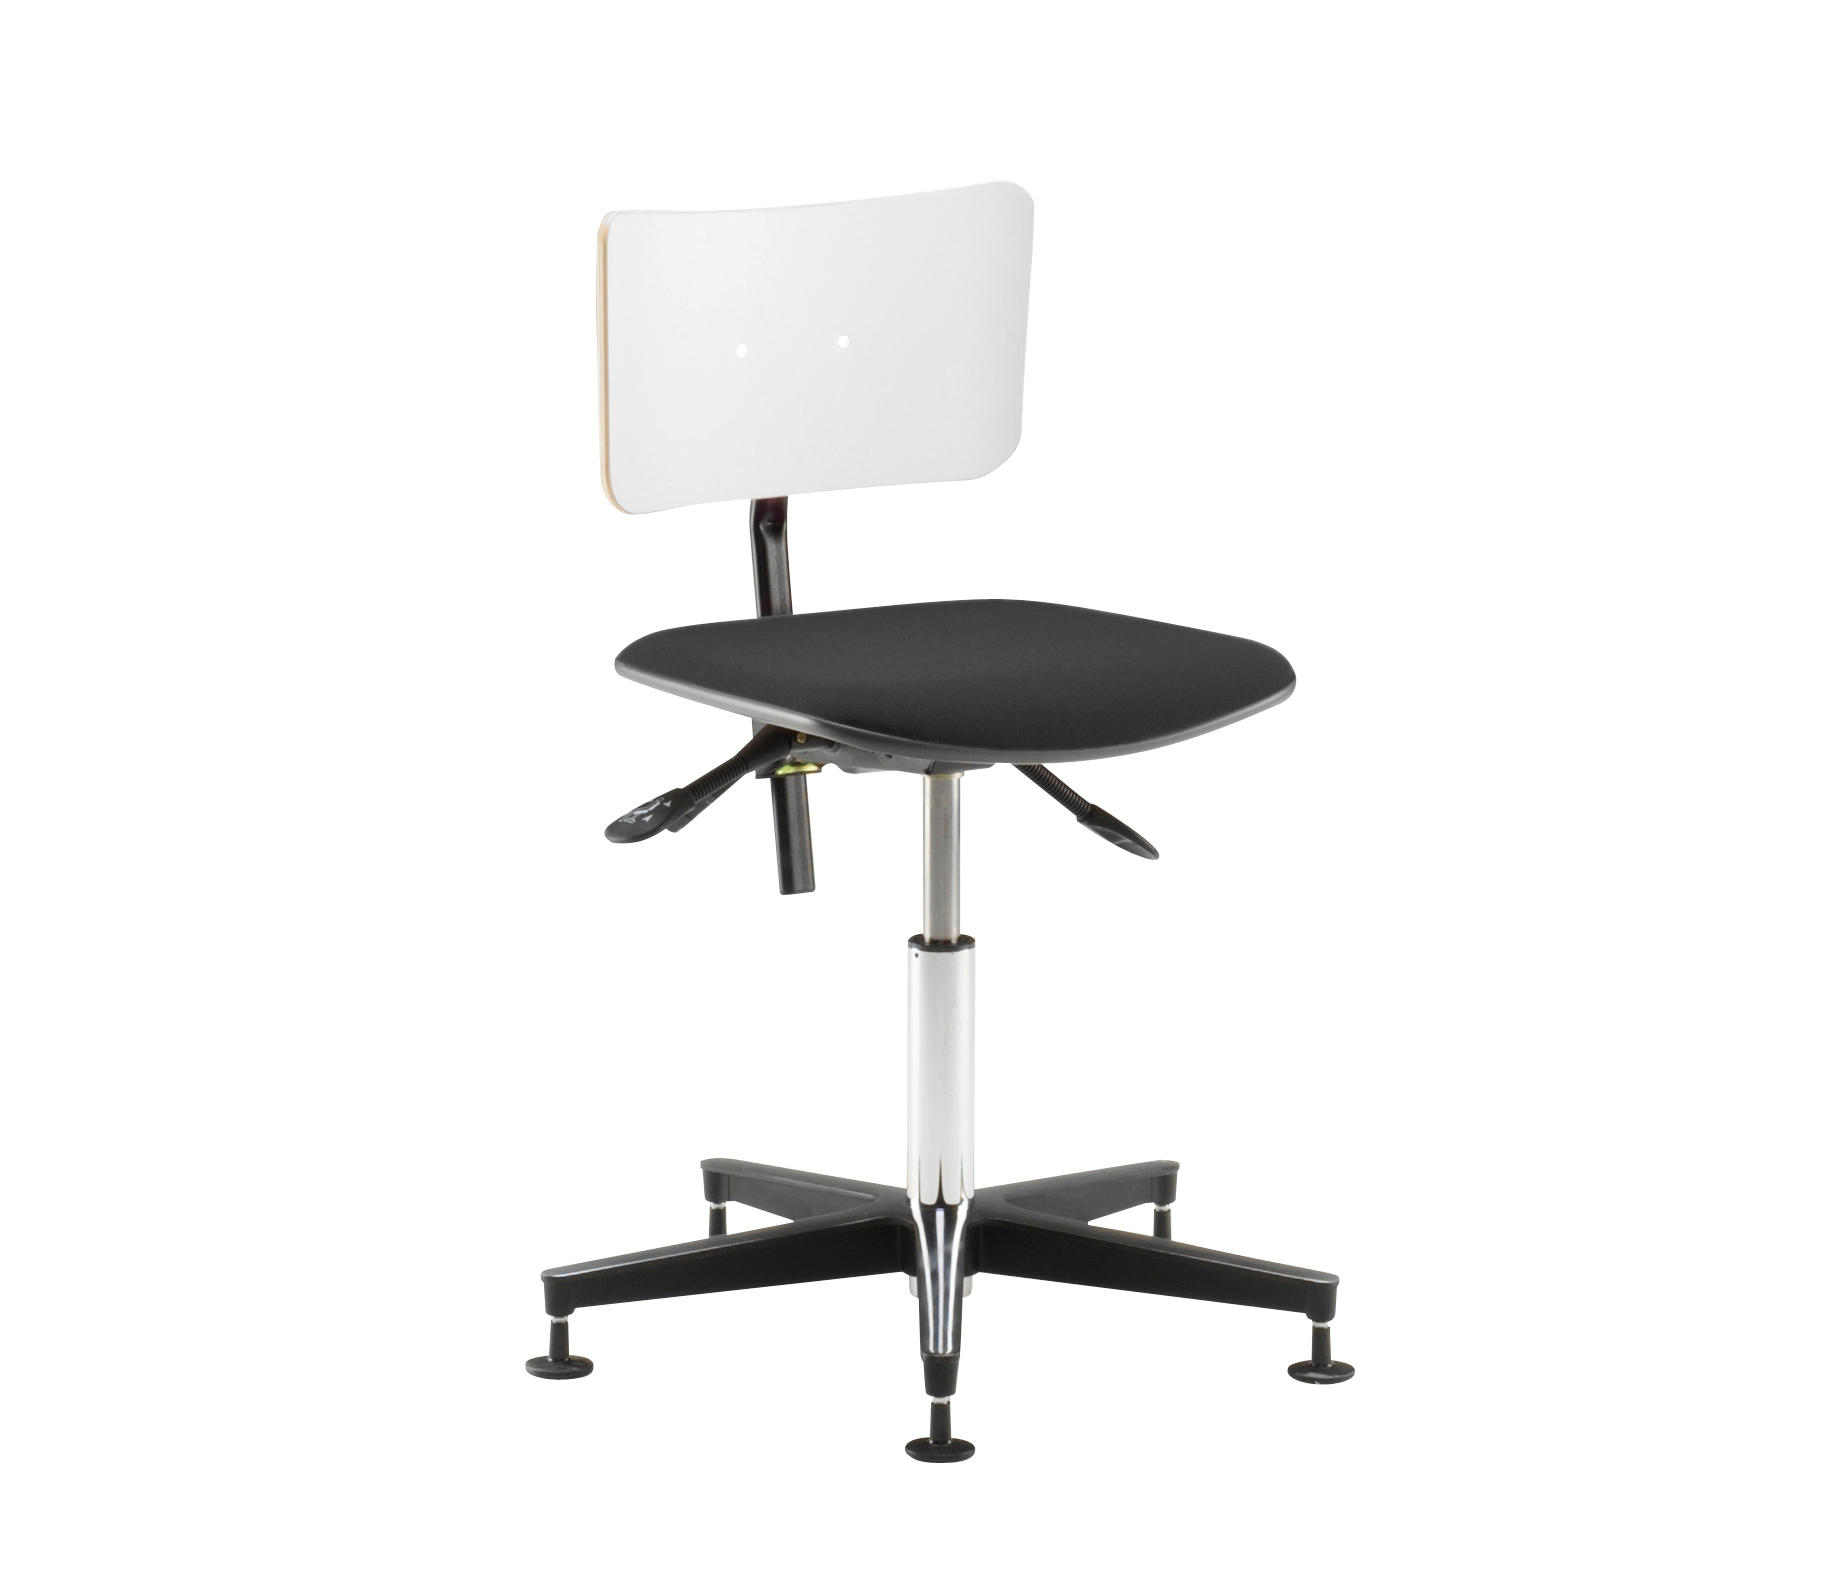 Work Chair Tutor Work Chair Low Classroom School Chairs From